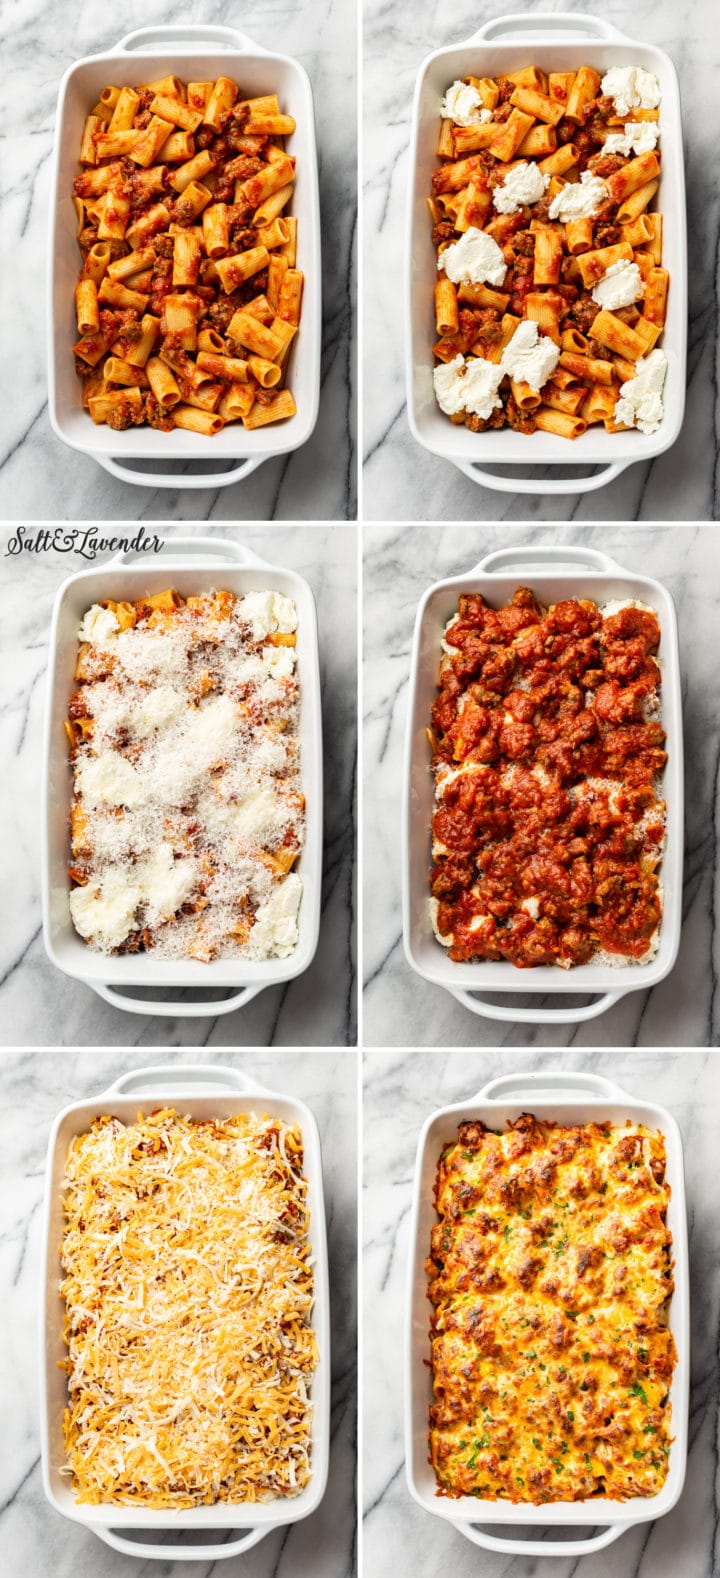 collage of baked rigatoni with sausage process photos